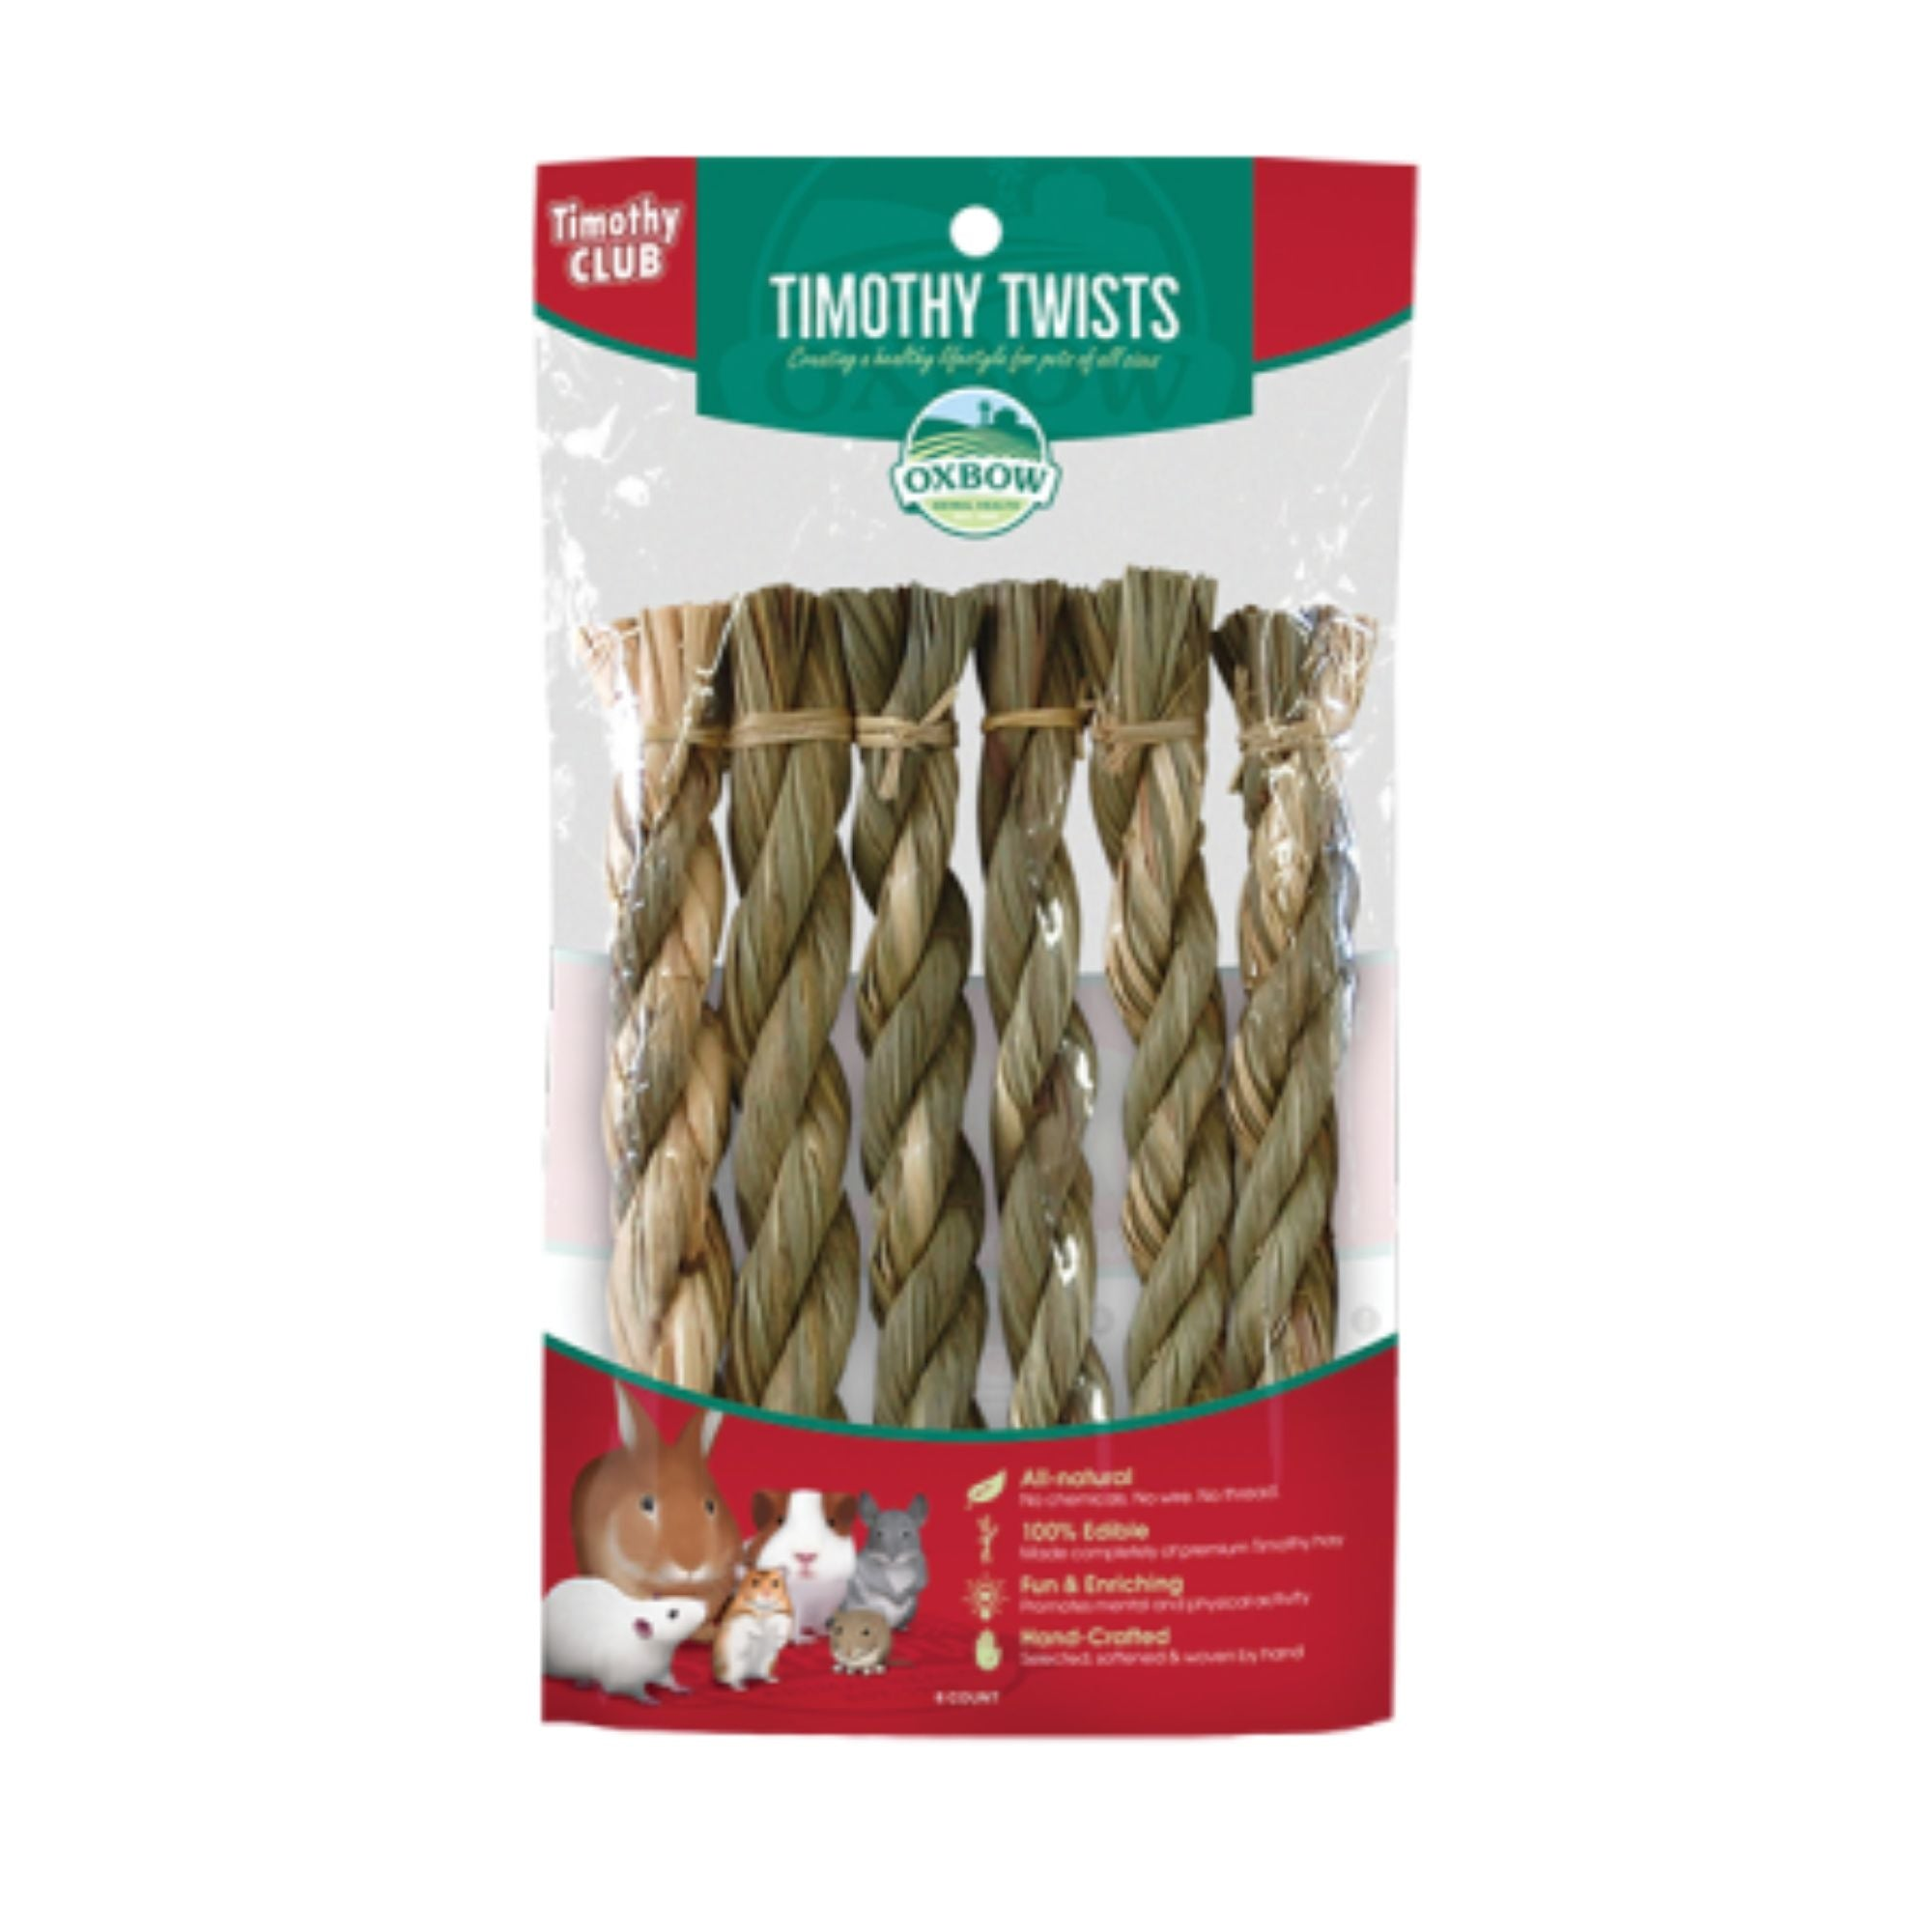 Oxbow Timothy Twists for Rabbits & Small Animals | Barks & Bunnies